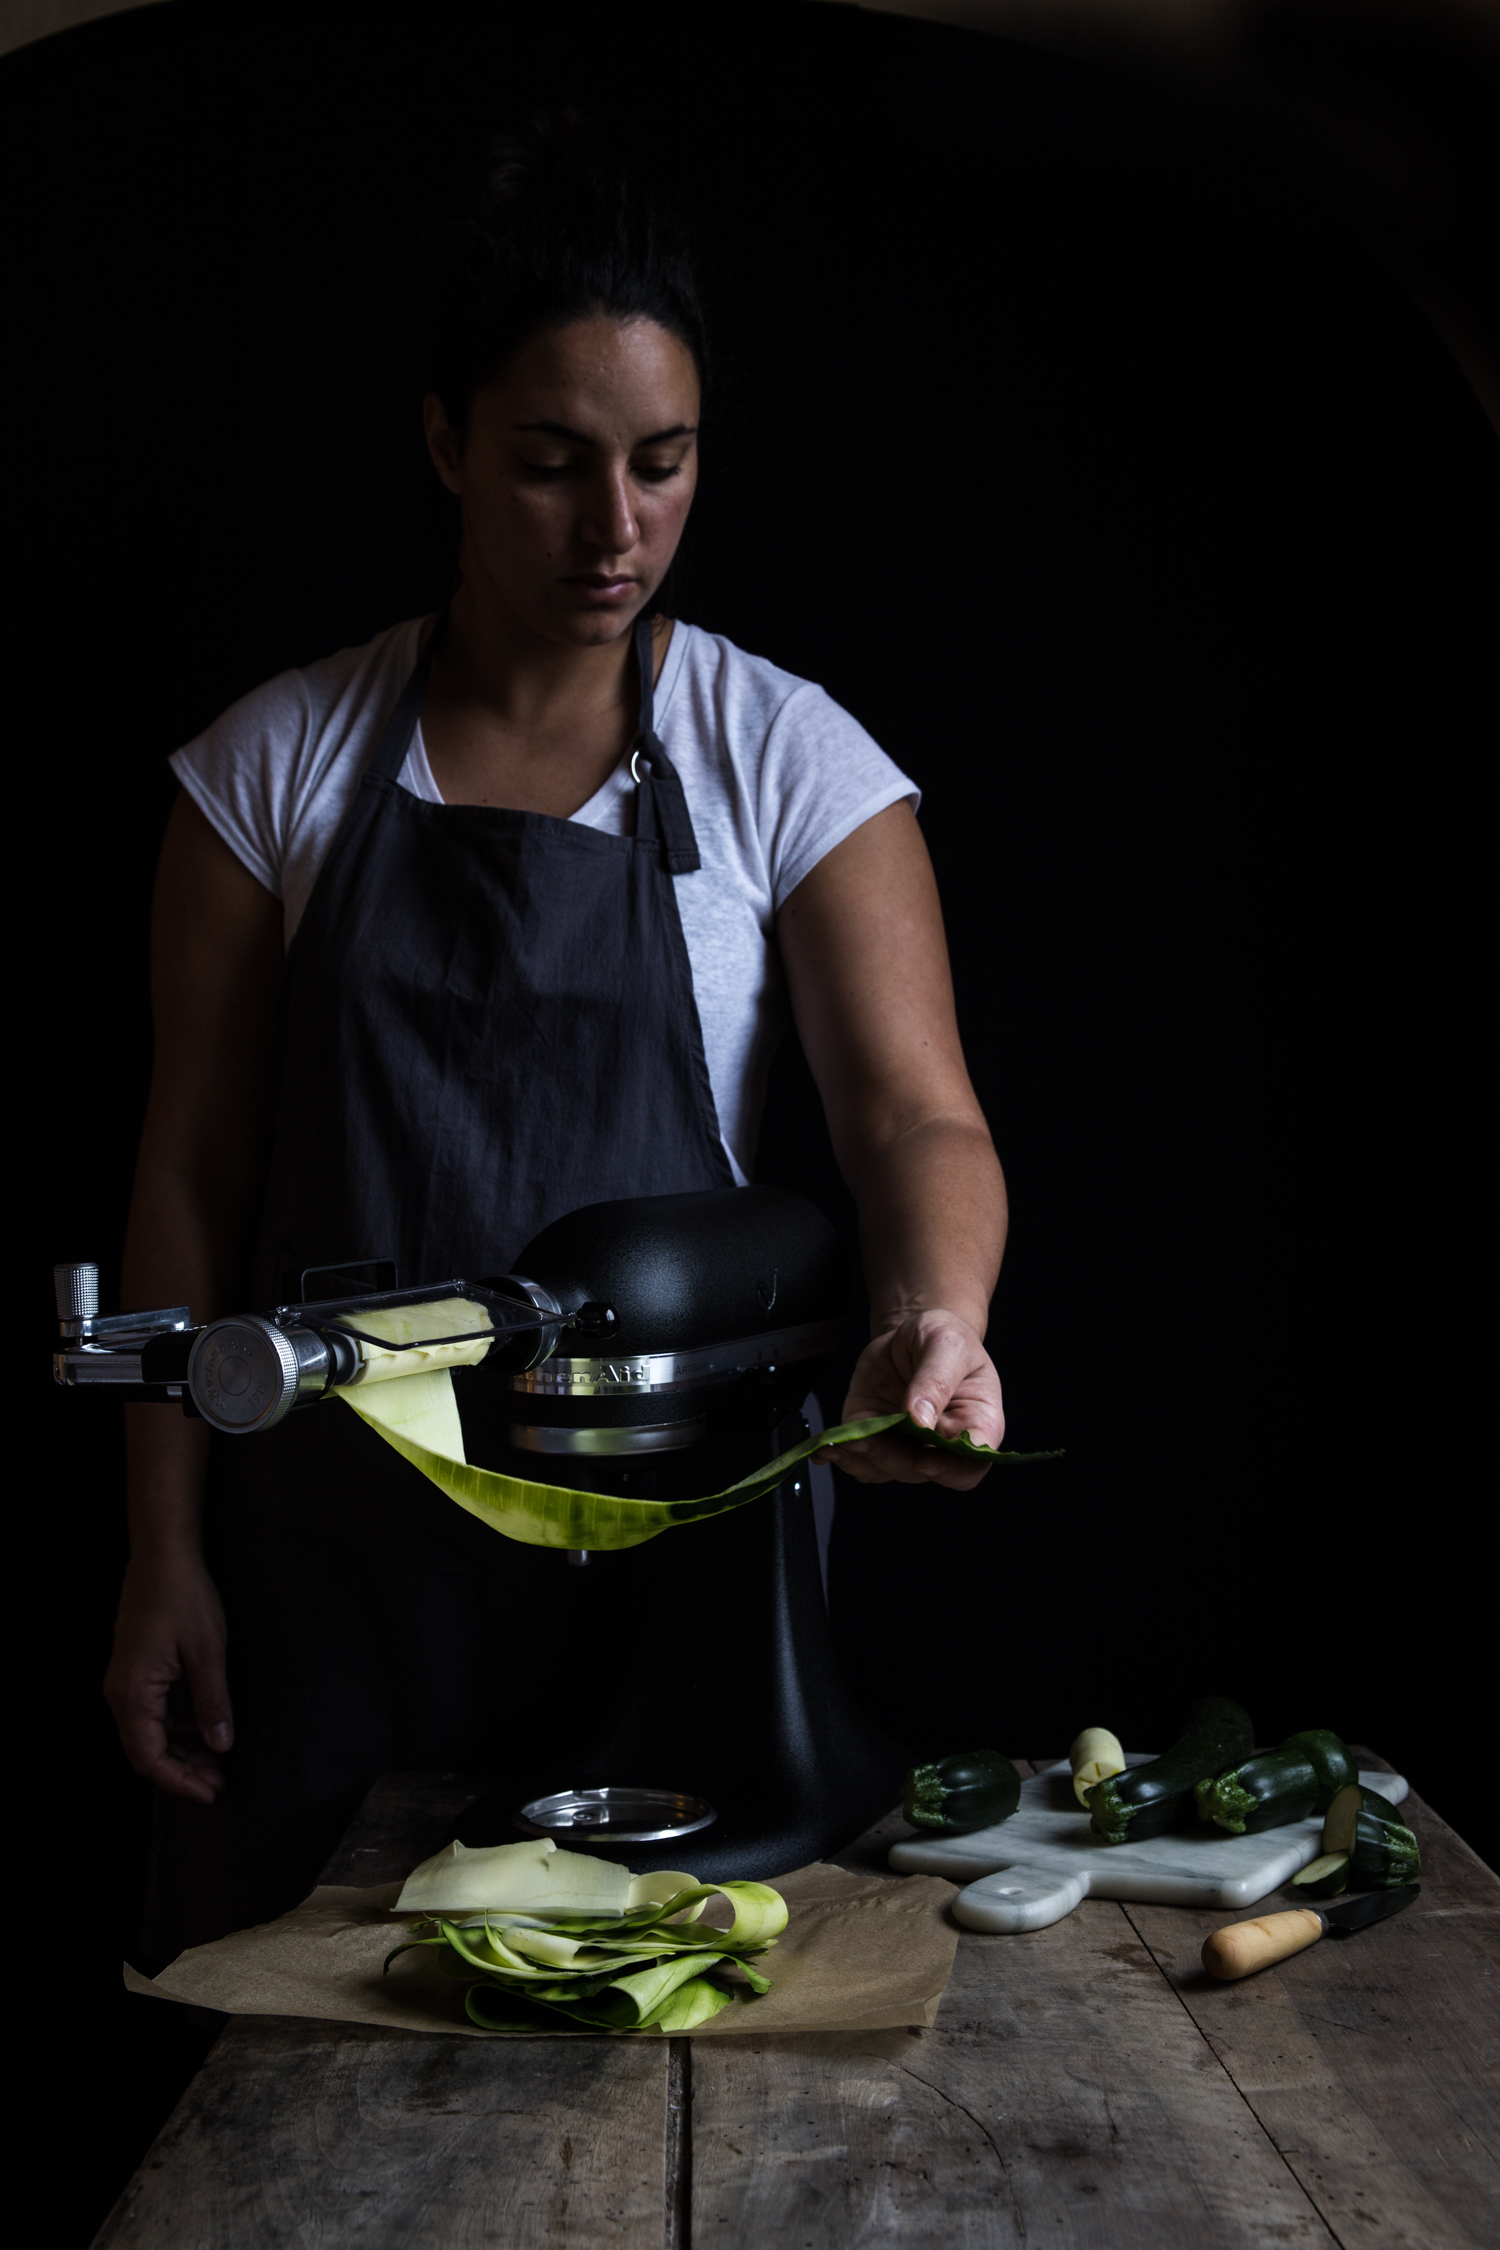 Rouleaux de courgettes au four - Prep, Eat, Meal - Kitchen Aid - Ophelie's Kitchen Book -Ophelie Lauret-2